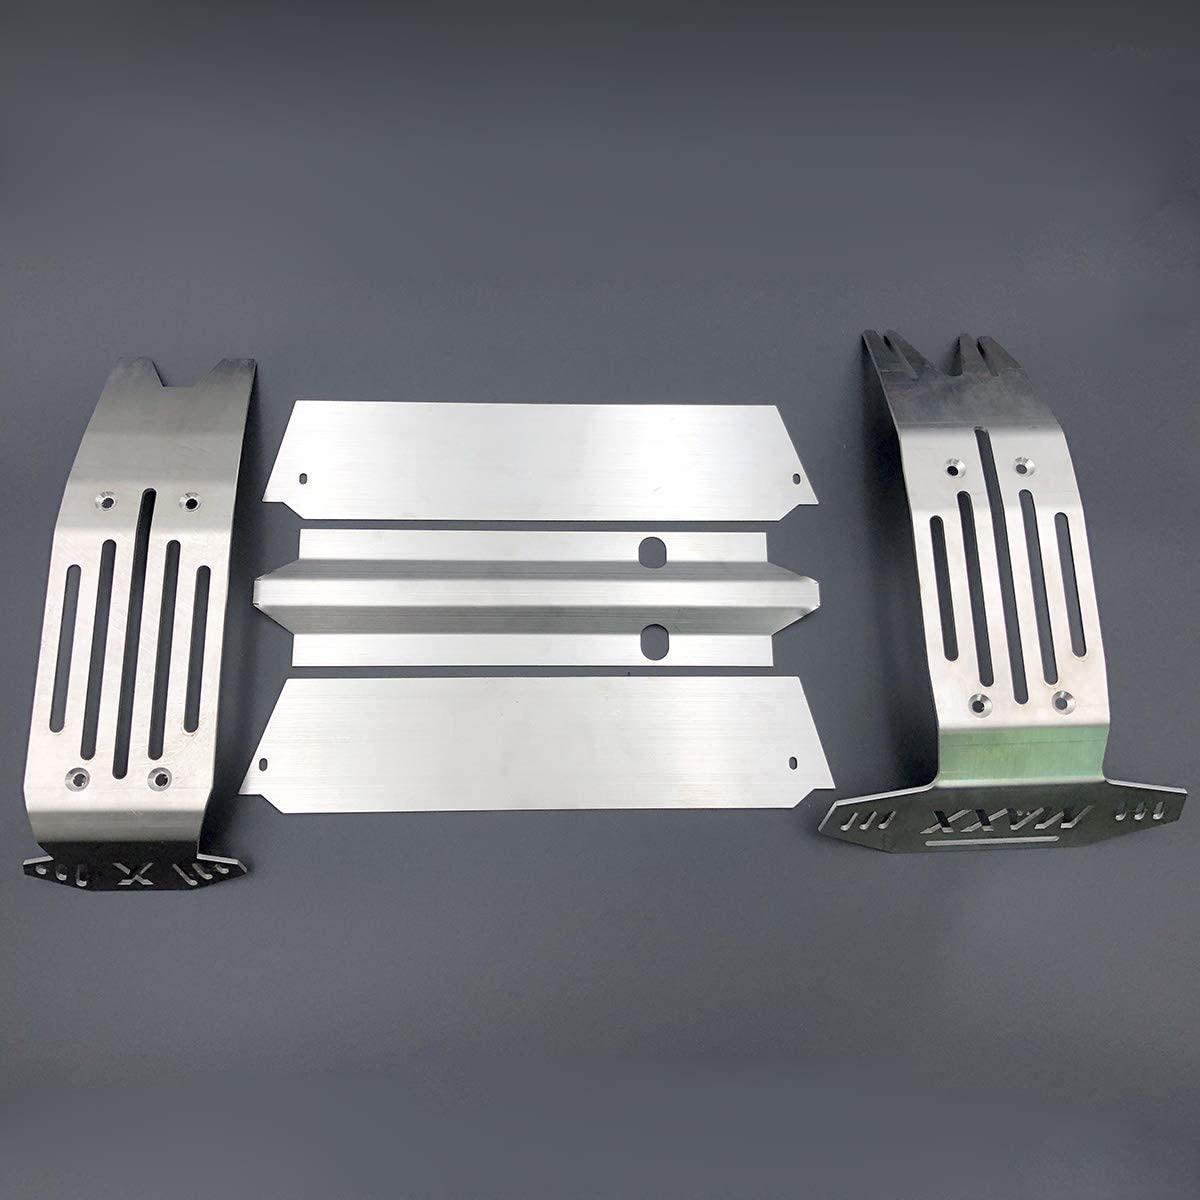 ACHICOO Stainless Steel Chassis Armor fo Plate Skid Front Rear Gorgeous Cash special price